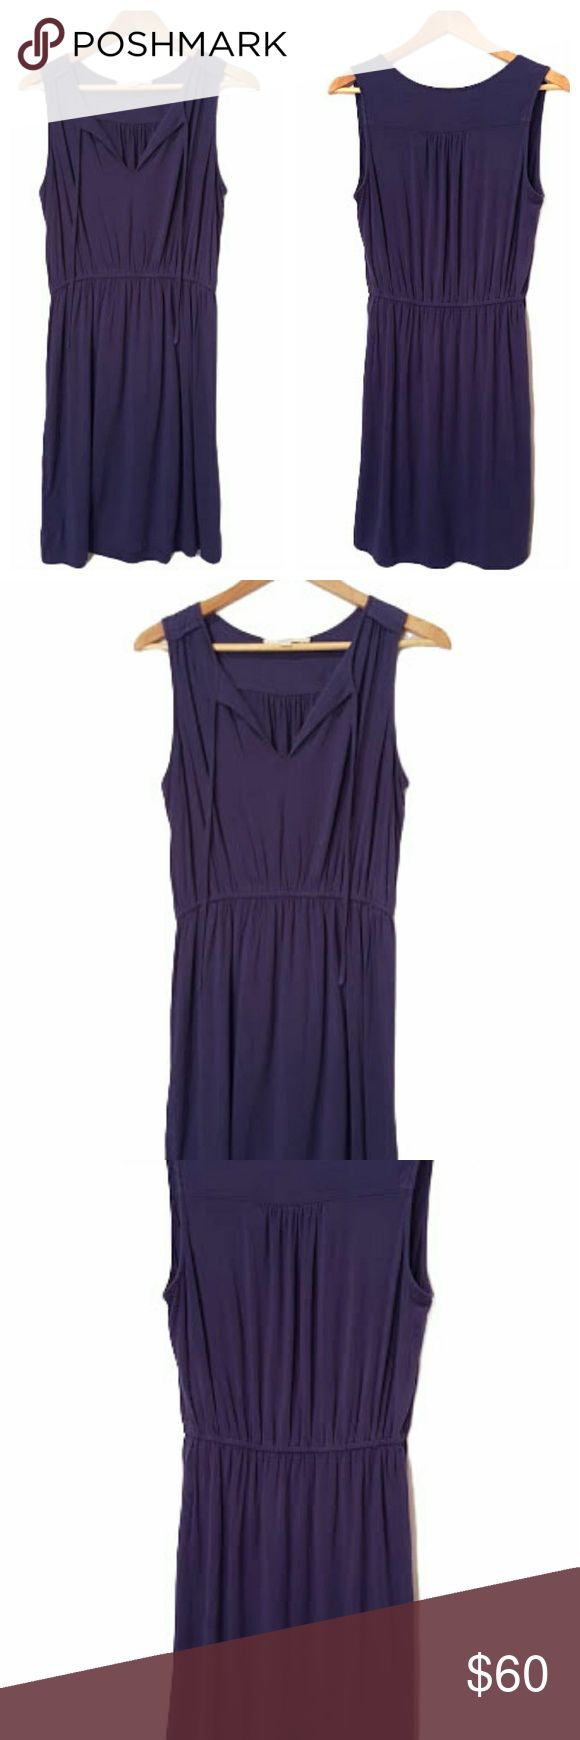 LOFT Casual Dress Purple-Blue Business-casual, comfy-chic LOFT dress. Versatile, flattering, and classic. Beautiful deep blue-purple color. Wear to the office with a fitted blazer and peep toe heels. Or for a comfy-chic weekend, pair with a denim jacket and strappy sandals. Stay warm in the fall by pairing with a vegan leather jacket, tights and boots. Notched v-neck with optional neck tie closure. Comfortable drape fit with an elastic waistband. Perfect condition. Always open to offers and…